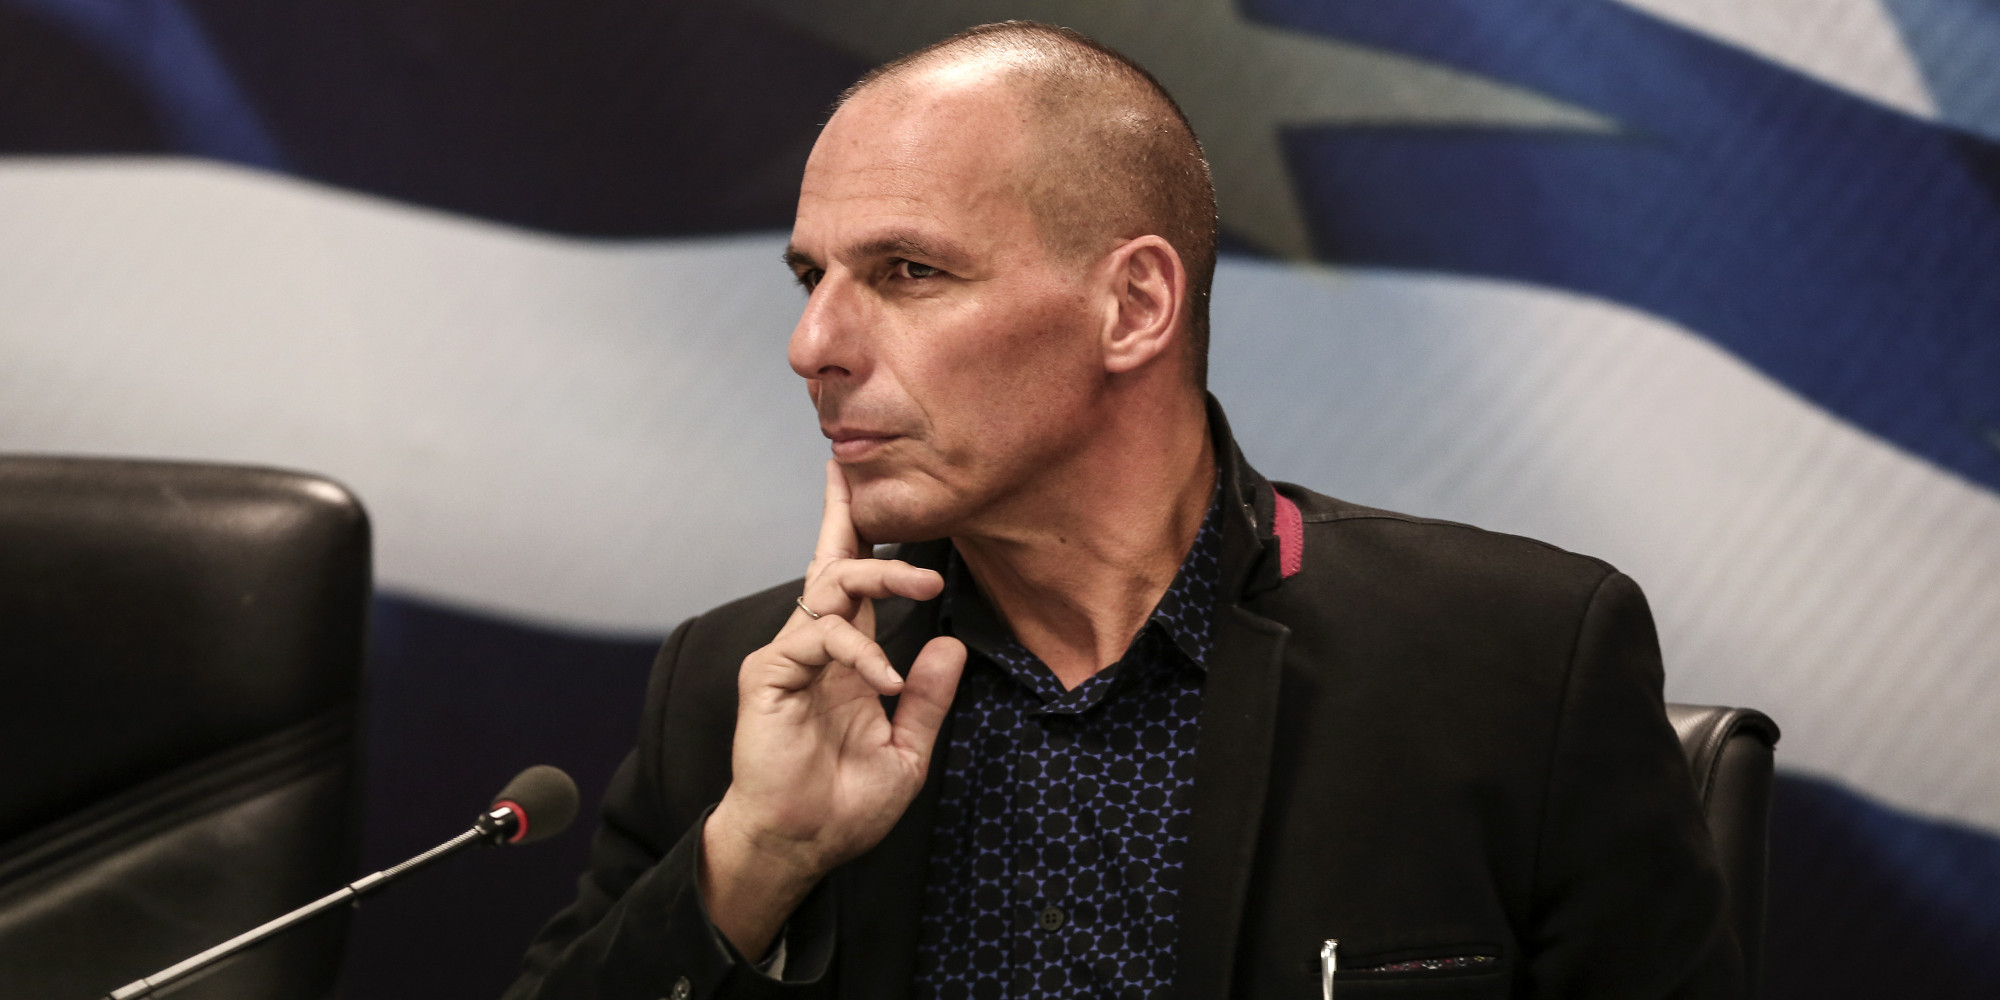 Greece's New Finance Minister Yanis Varoufakis